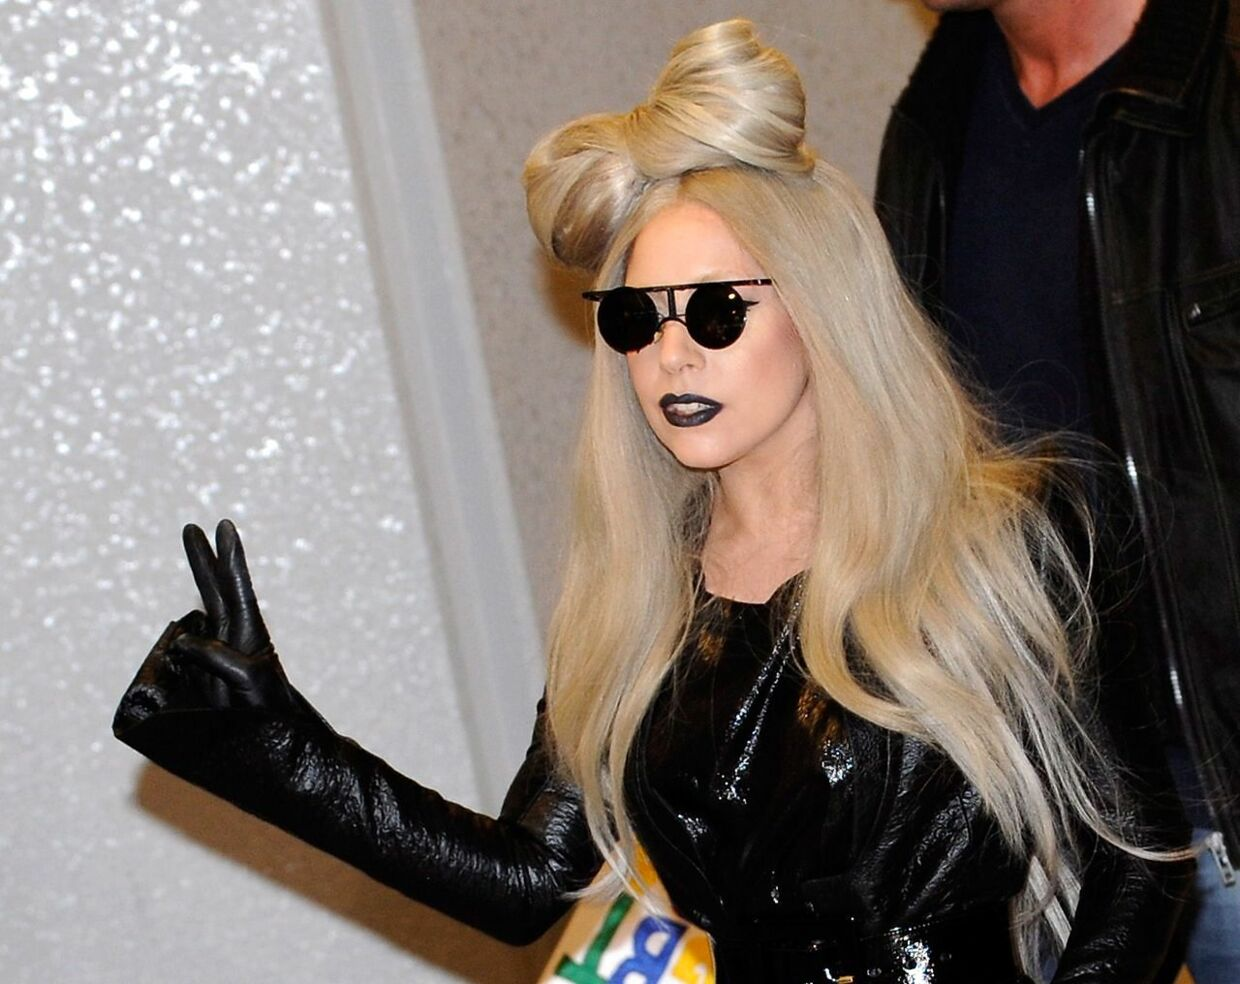 epa03043493 (FILE) A file picture dated 20 December 2011 shows US singer Lady Gaga arriving at Narita International Airport, near Tokyo, Japan. A former assistant to Lady Gaga is suing the pop superstar for 380, 000 dollars, claiming that the Poker Face singer forced her to work more than 7, 000 hours of overtime during the Monster Ball world tour last year. According to the New York Post Monday, Jennifer Oââ // ËNeill, 41, was the former personal assistant to Lady Gaga. She claimed in the court filing that she was forced to work around the clock to cater to the star's every whim, ensuring 'the promptness of a towel following a shower and serving as a personal alarm clock to keep (Gaga) on schedule.' EPA/FRANCK ROBICHON *** Local Caption *** 00000403039271